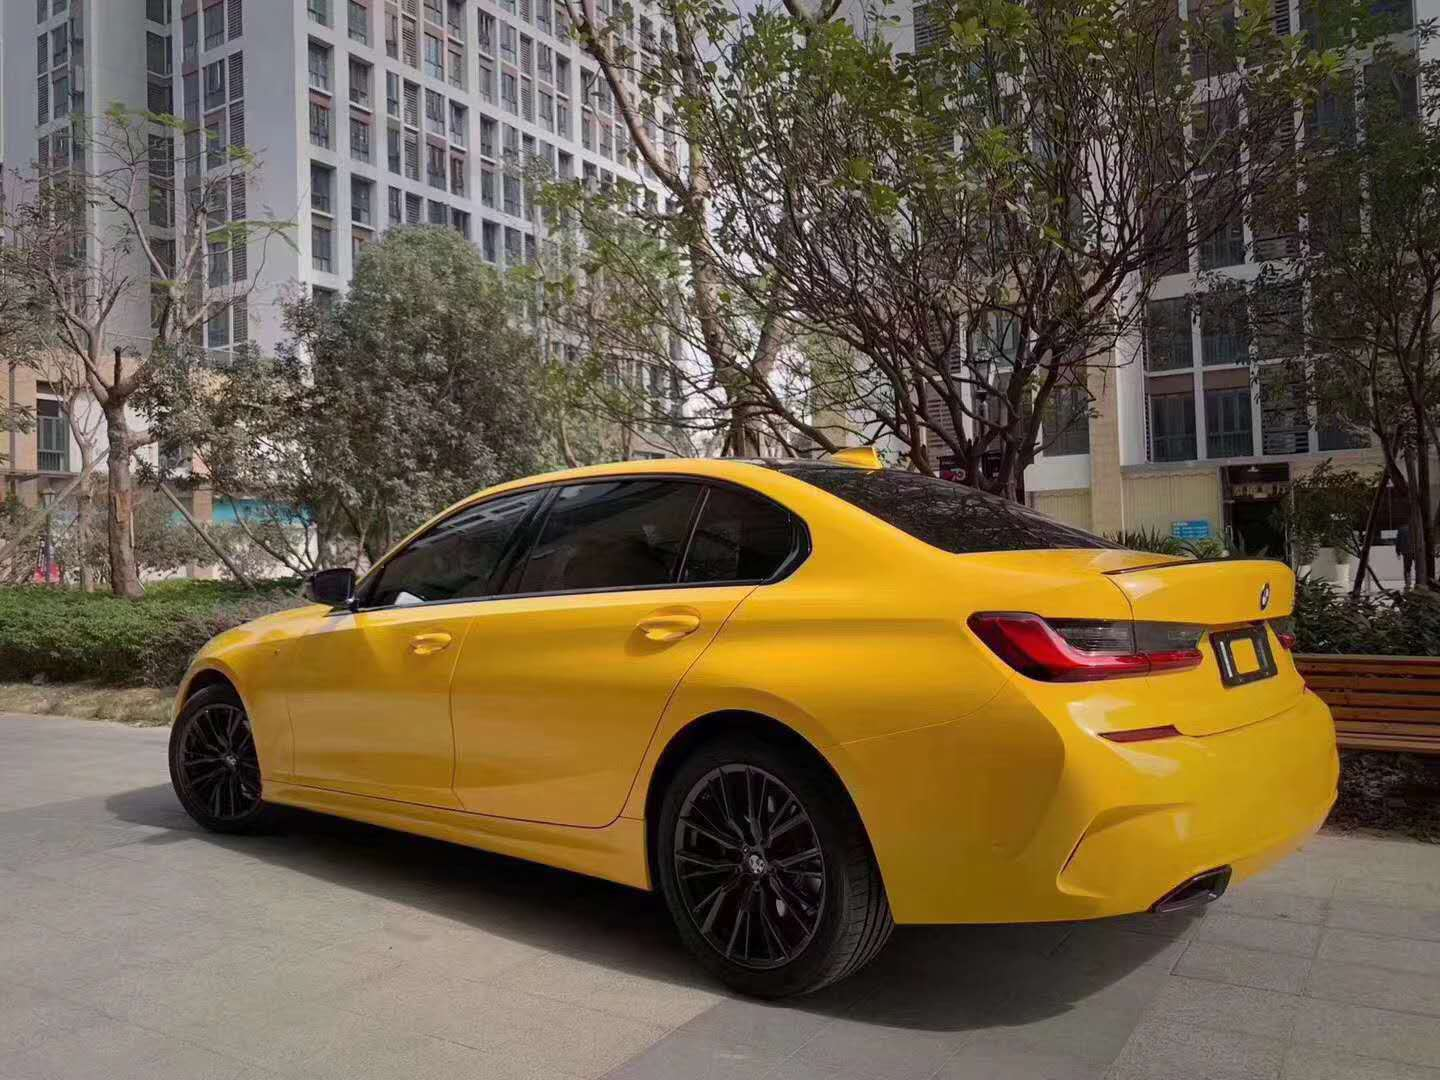 metallic-orange-bmw-m4-with-paint-protection-film.jpg